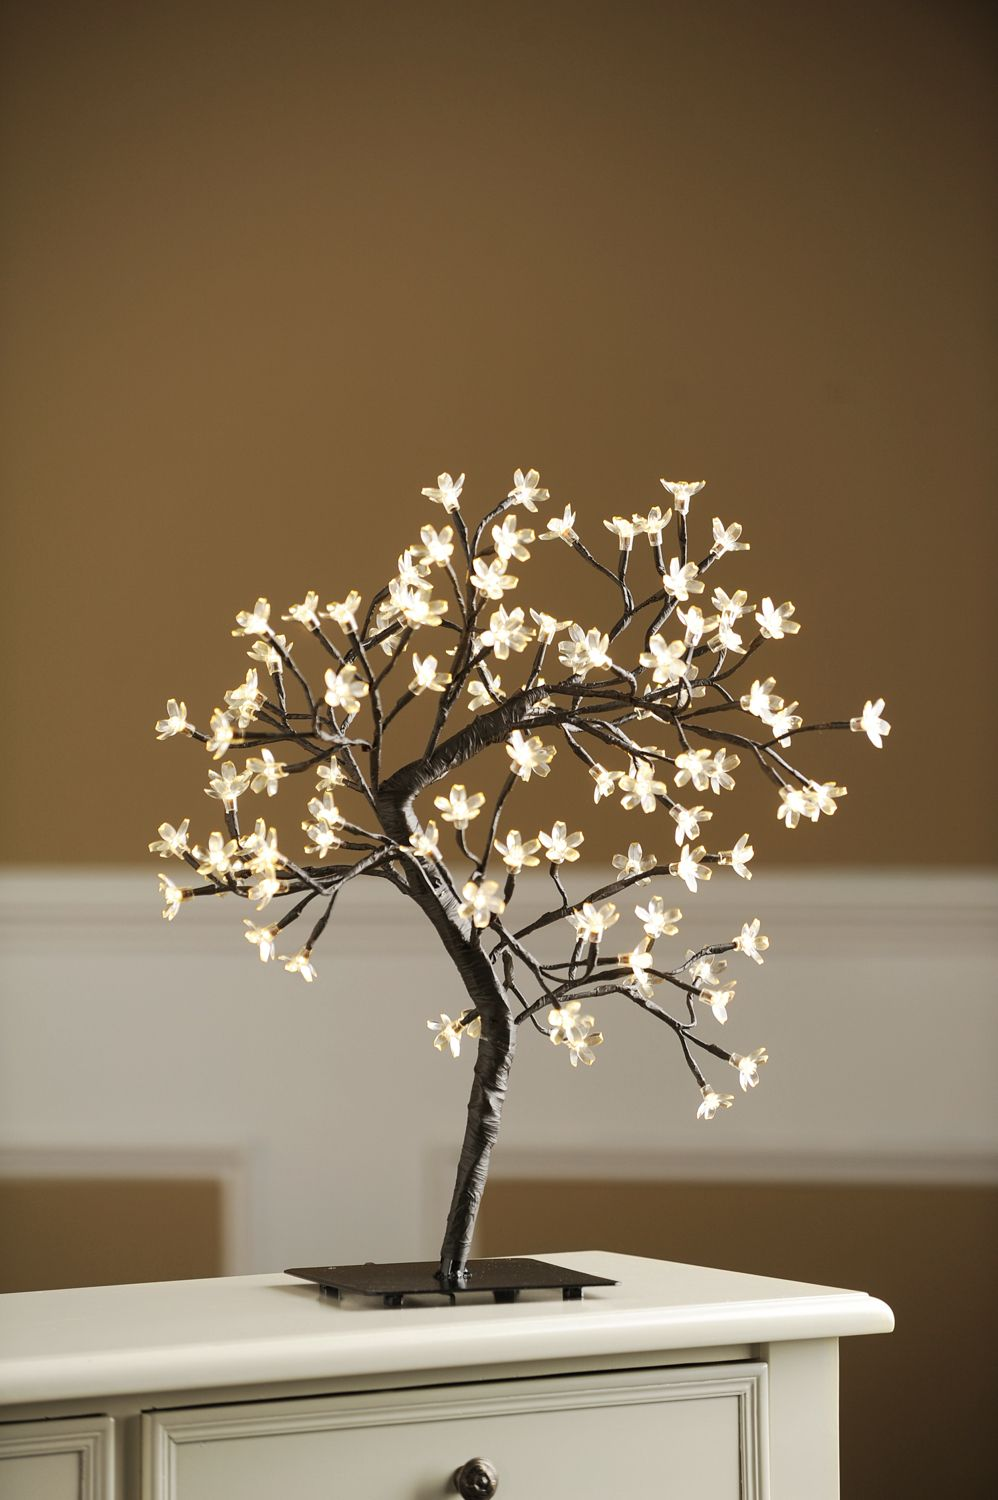 Bring The Beauty Of Nature Indoors With The Pre Lit White Cherry Blossom Tree Plug In This Charming Tree To White Cherry Blossom Blossom Trees White Cherries